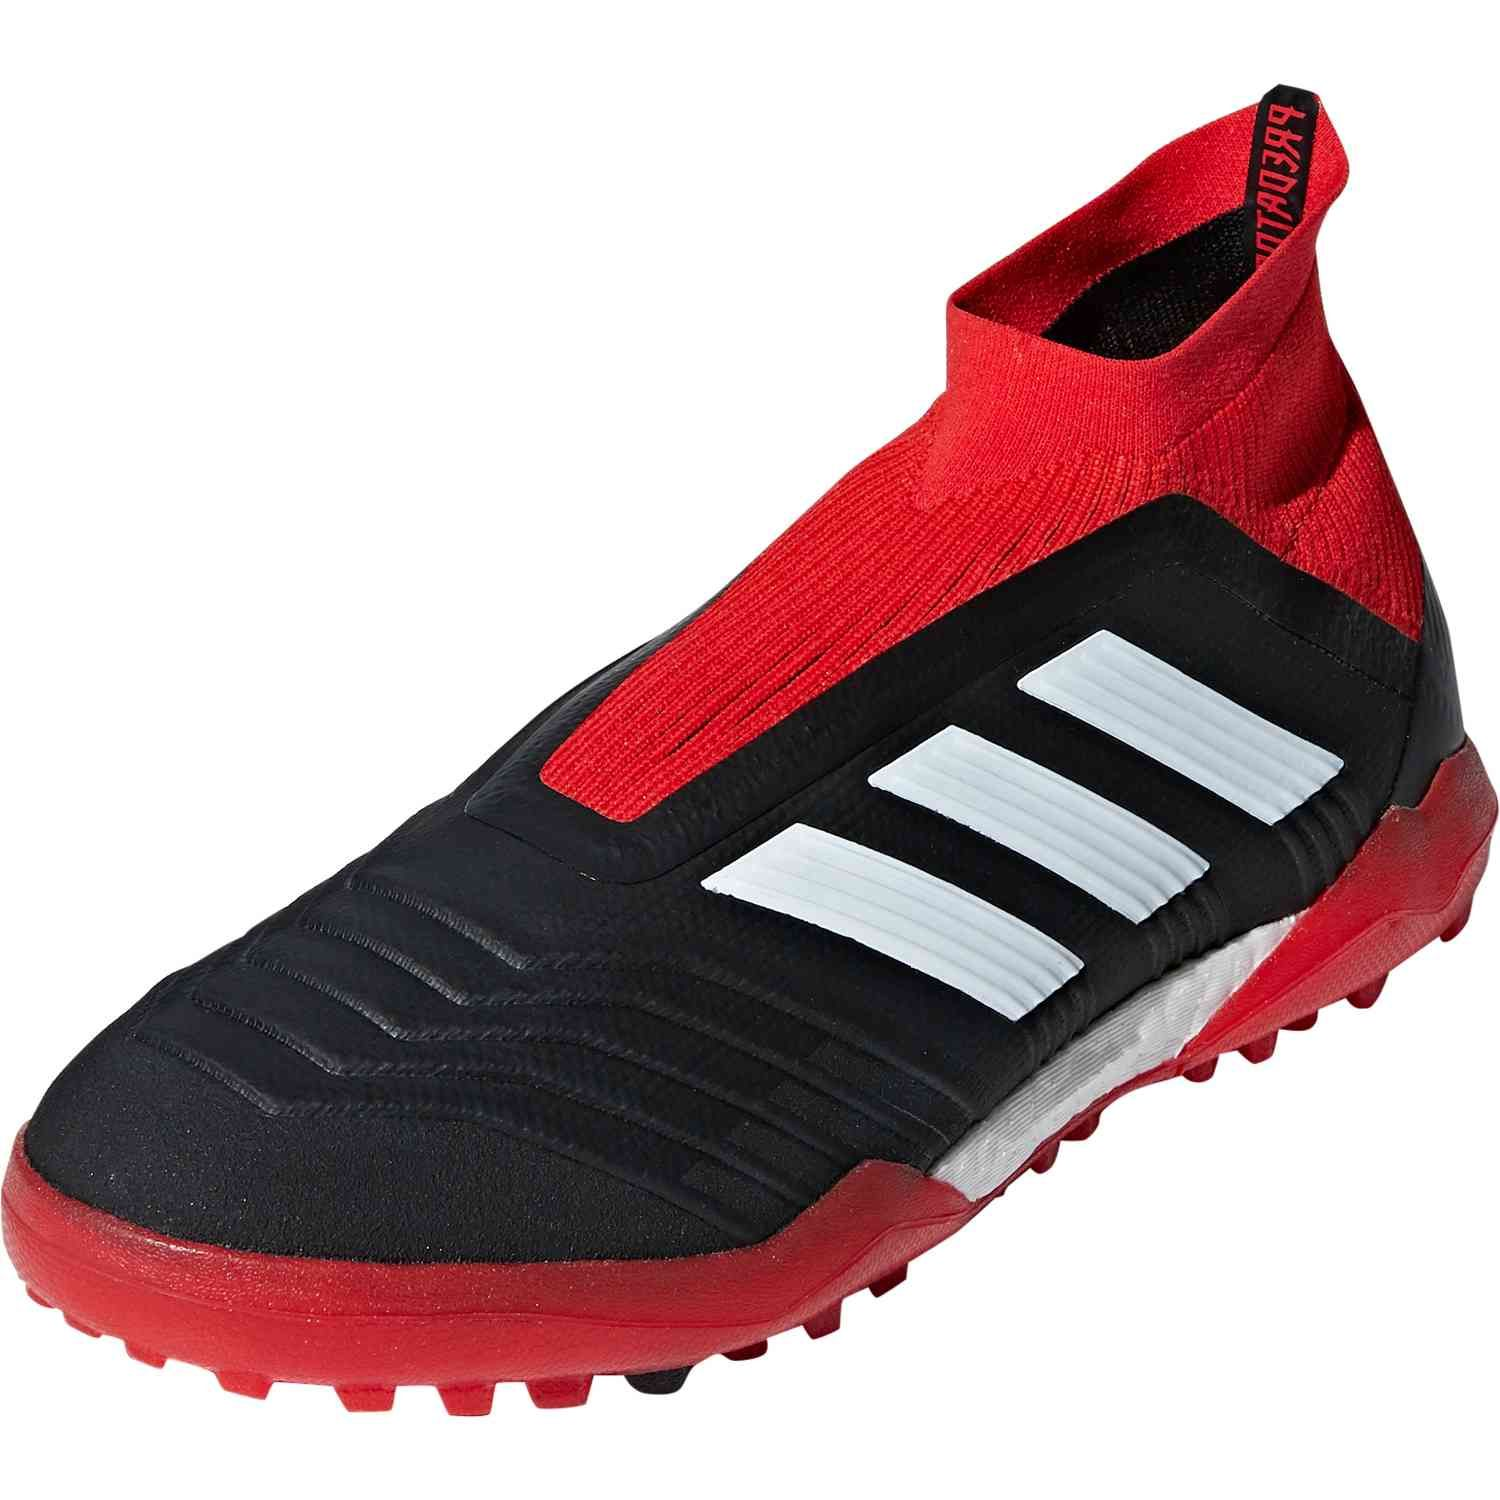 official photos a5c07 2b3cc Team Mode pack! adidas Predator Tango 18+ turf soccer shoes. Get them from  www.soccerpro.com